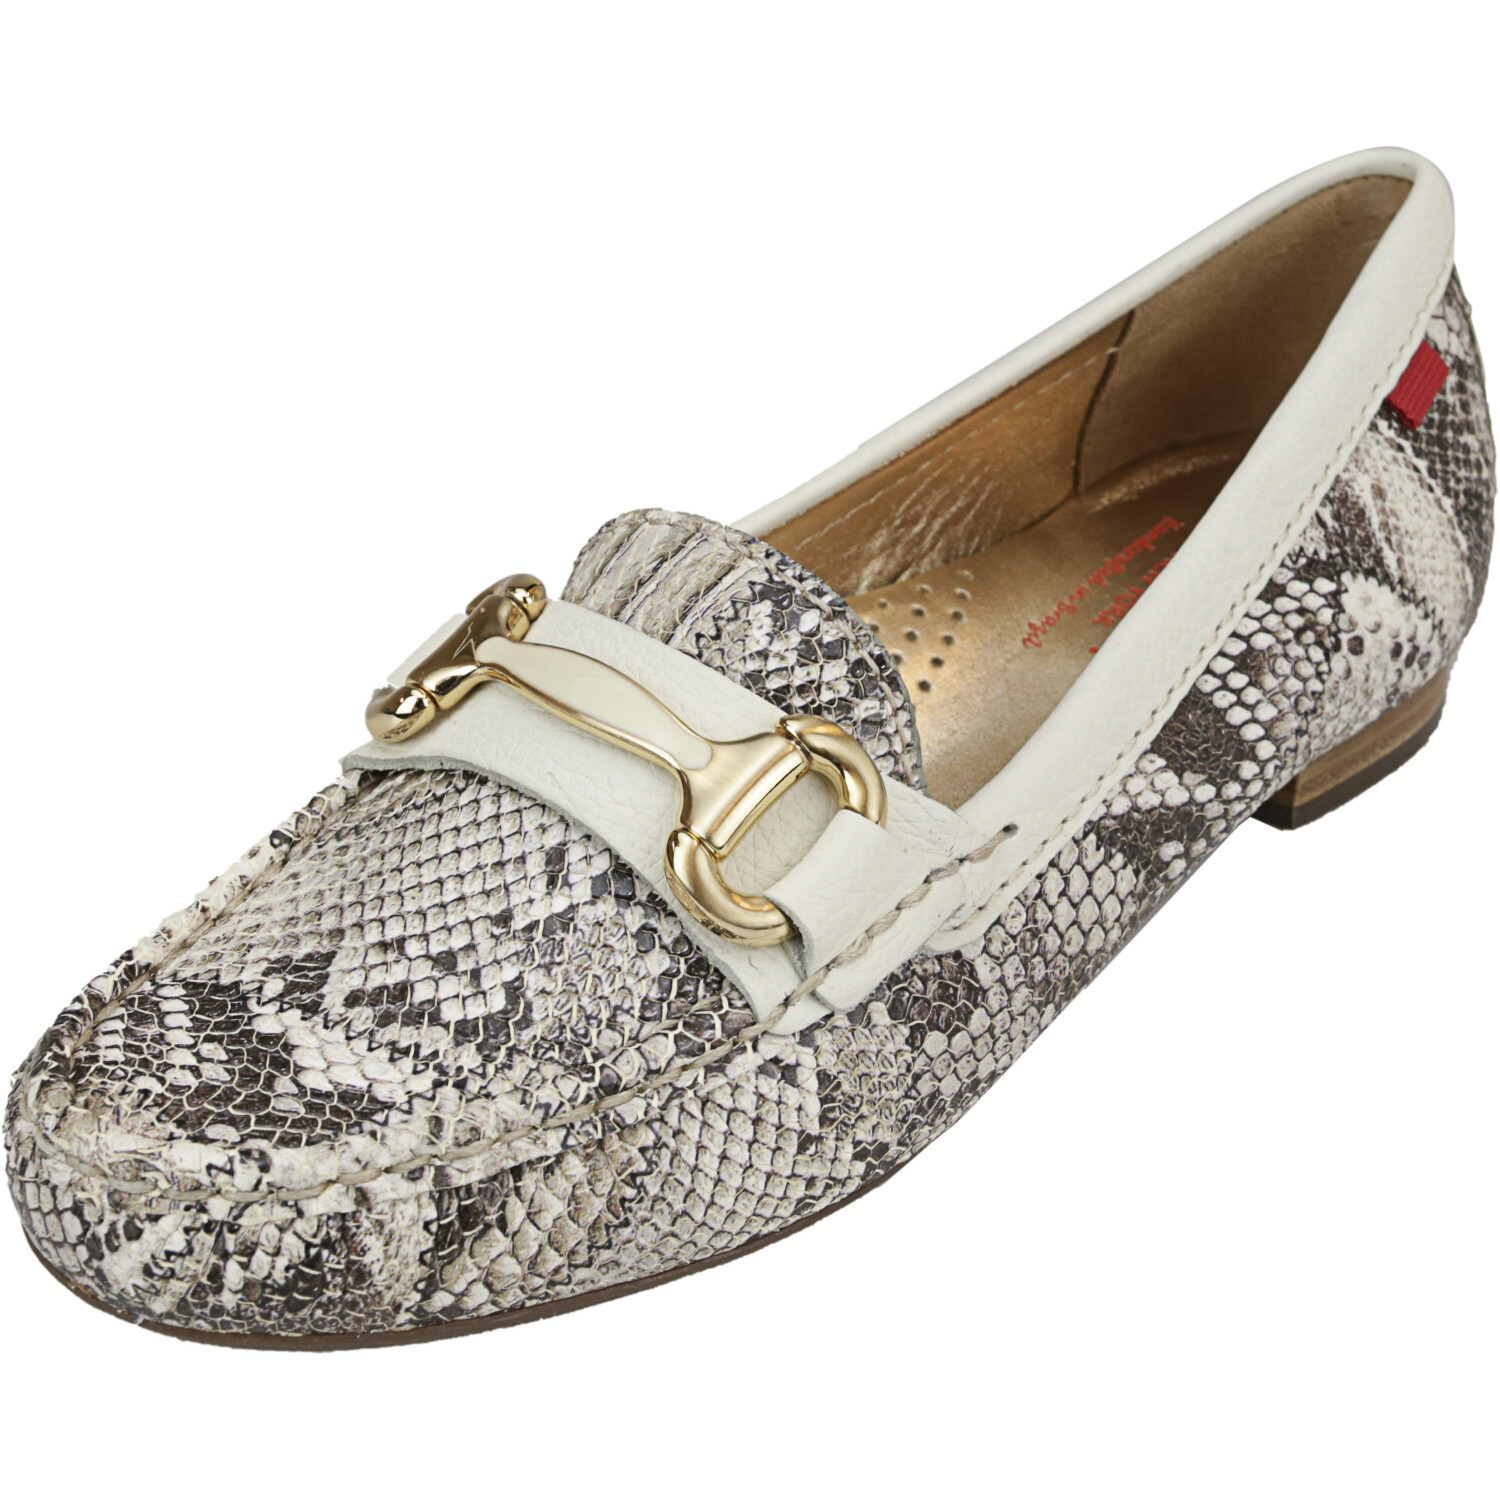 Marc Joseph New York Women's Grand St Patchwork Beige Ankle-High Leather Loafers & Slip-On - 5M